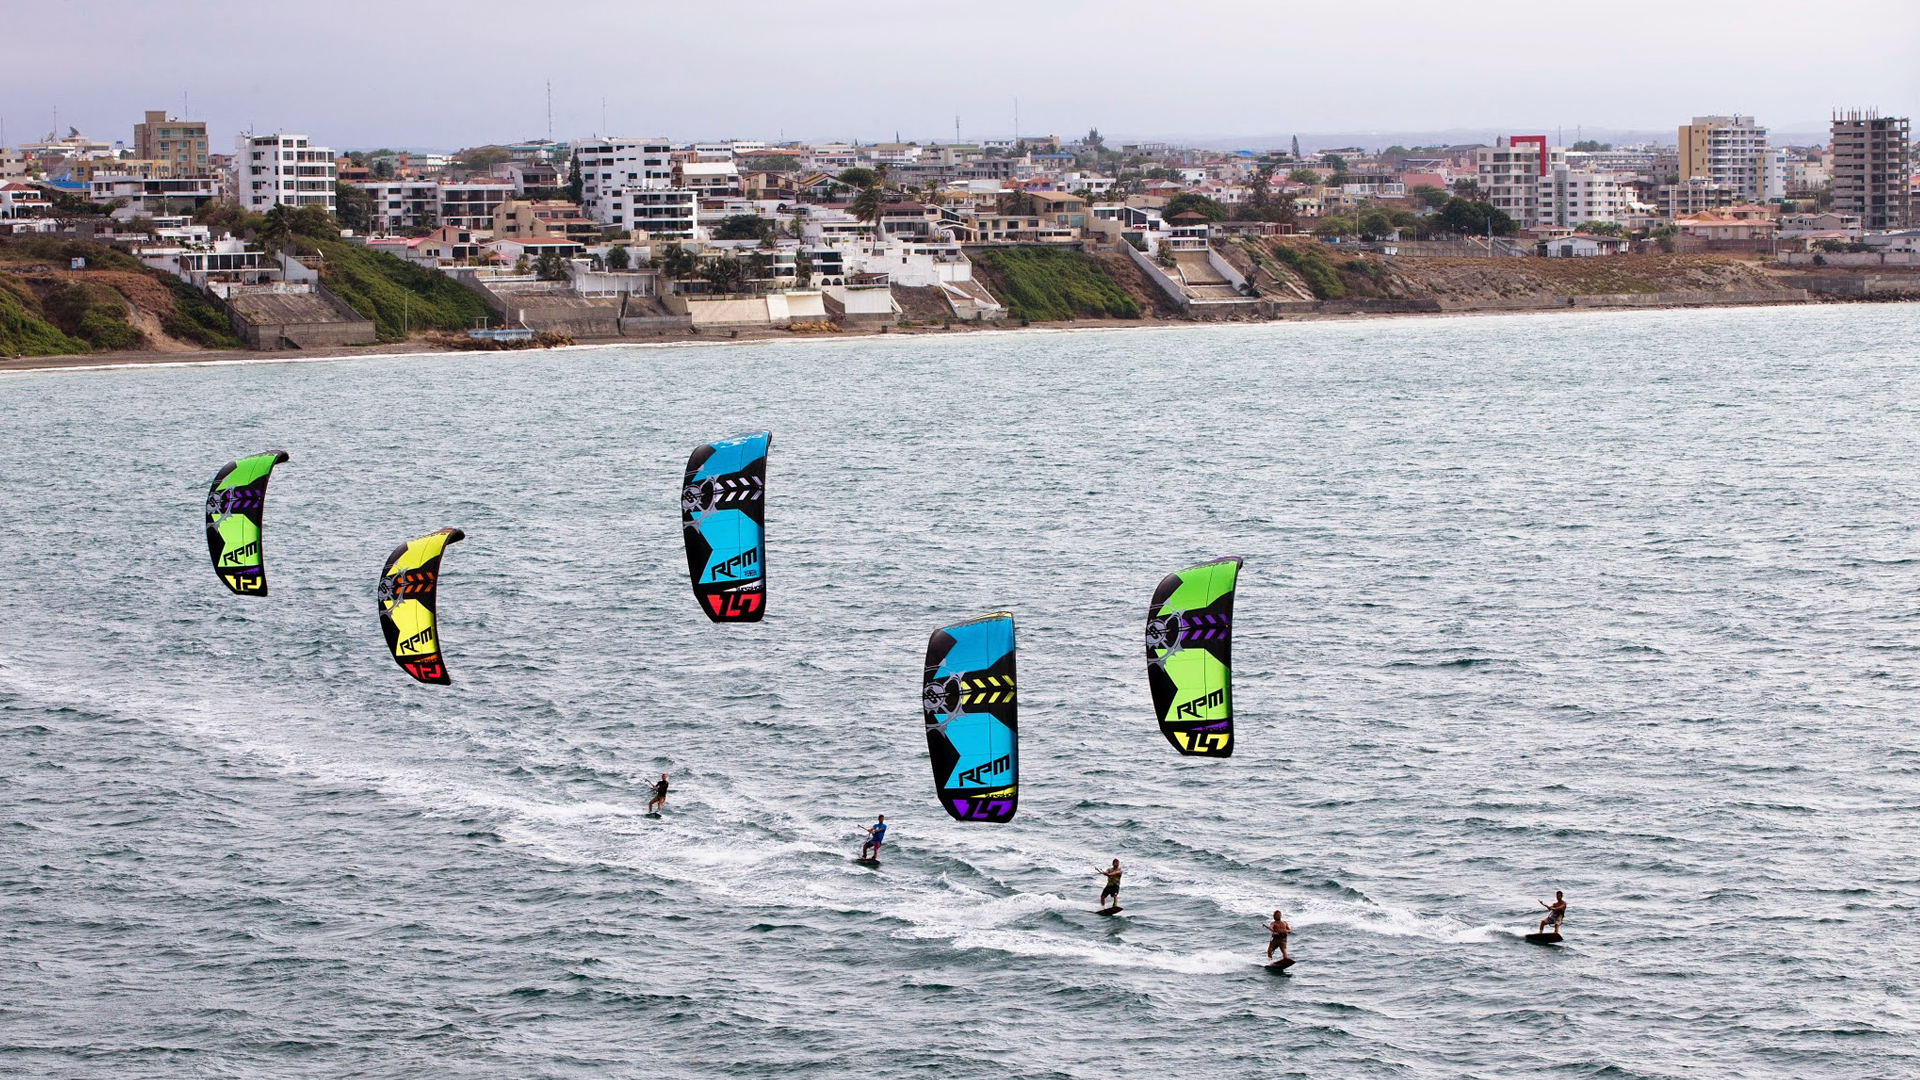 kitesurf wallpaper image - Slingshot RPM riders taking control of the bay - in resolution: High Definition - HD 16:9 1920 X 1080